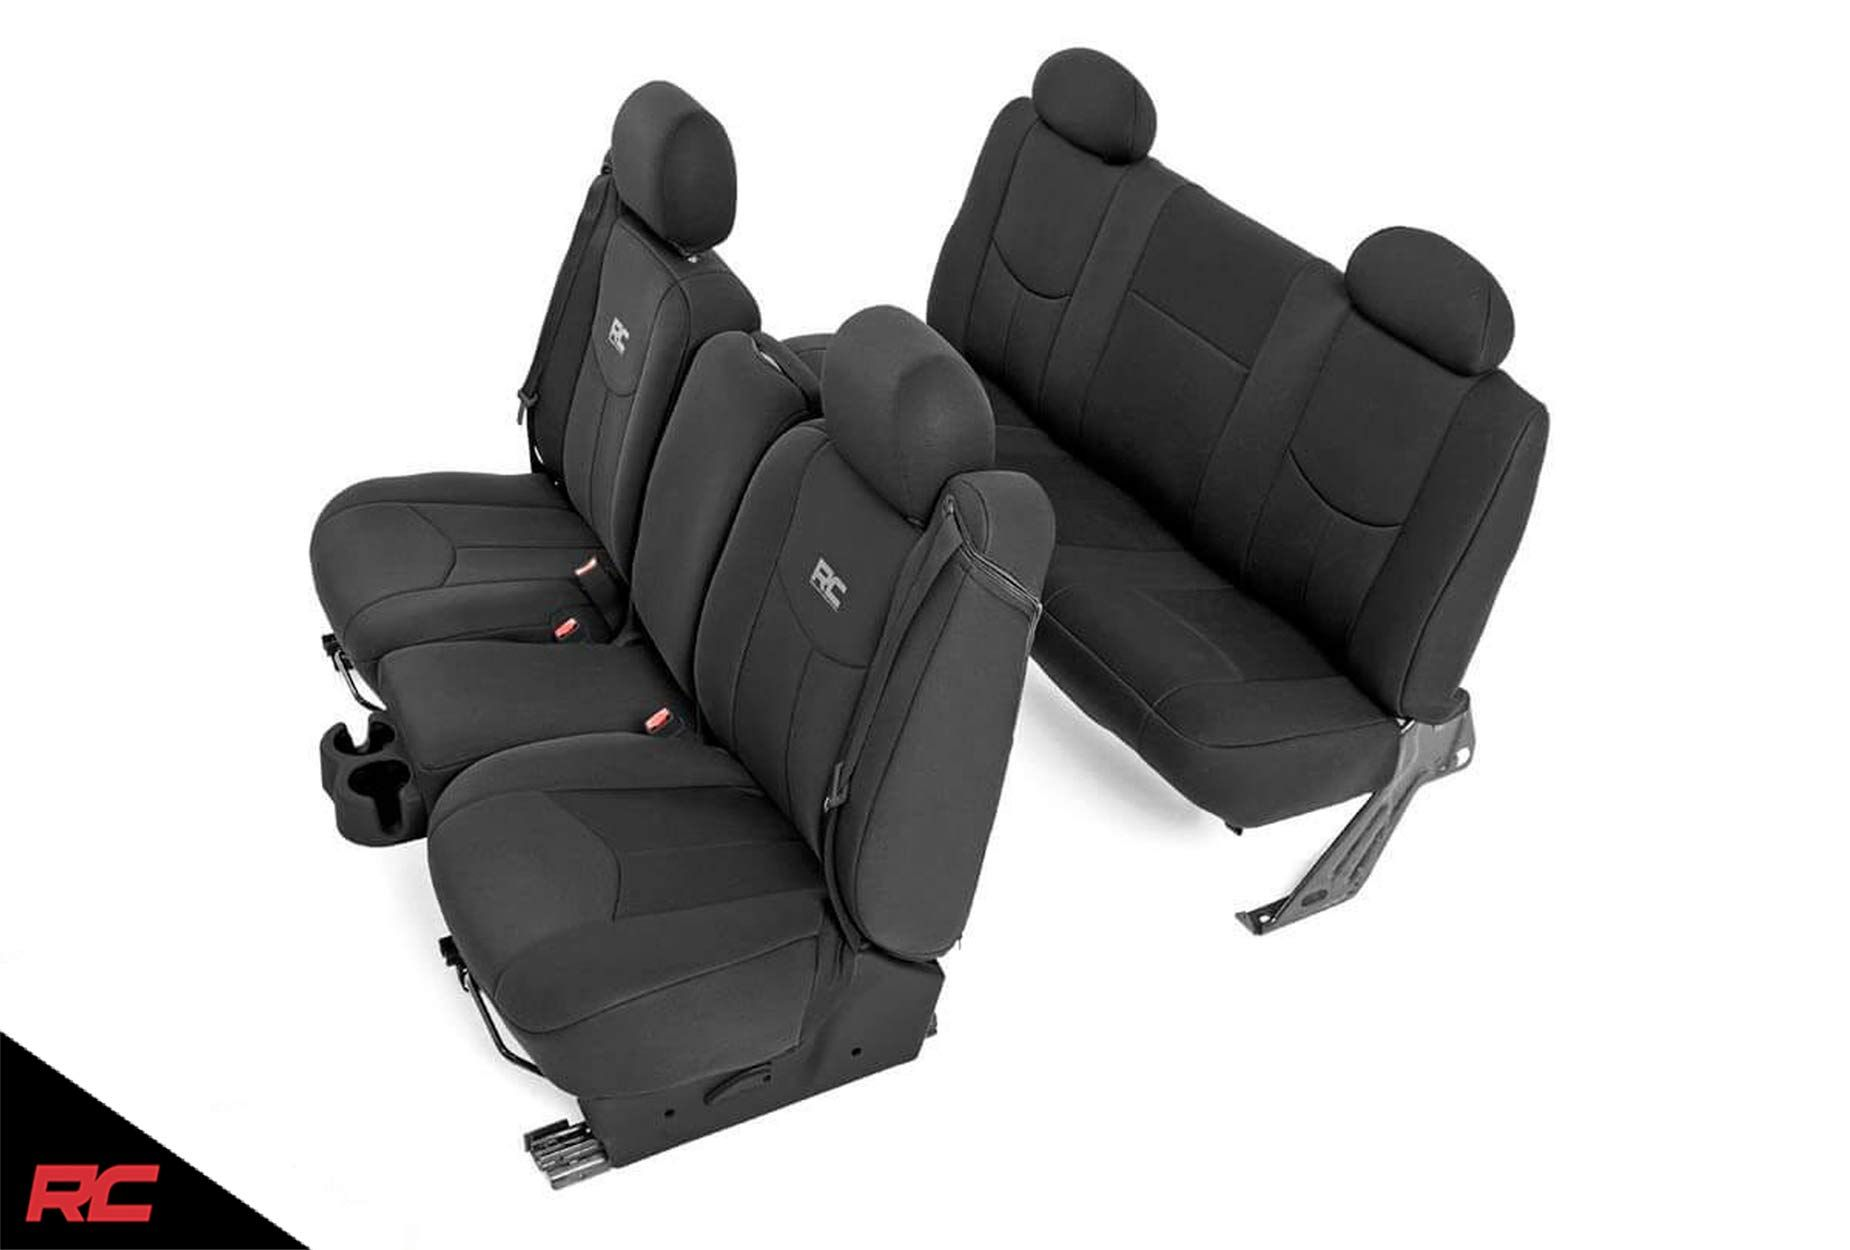 Rough Country Neoprene Seat Covers Sets Black Fits 1999 2006 Chevy Silverado 1500 Water Re Neoprene Seat Covers Custom Fit Seat Covers 2006 Chevy Silverado